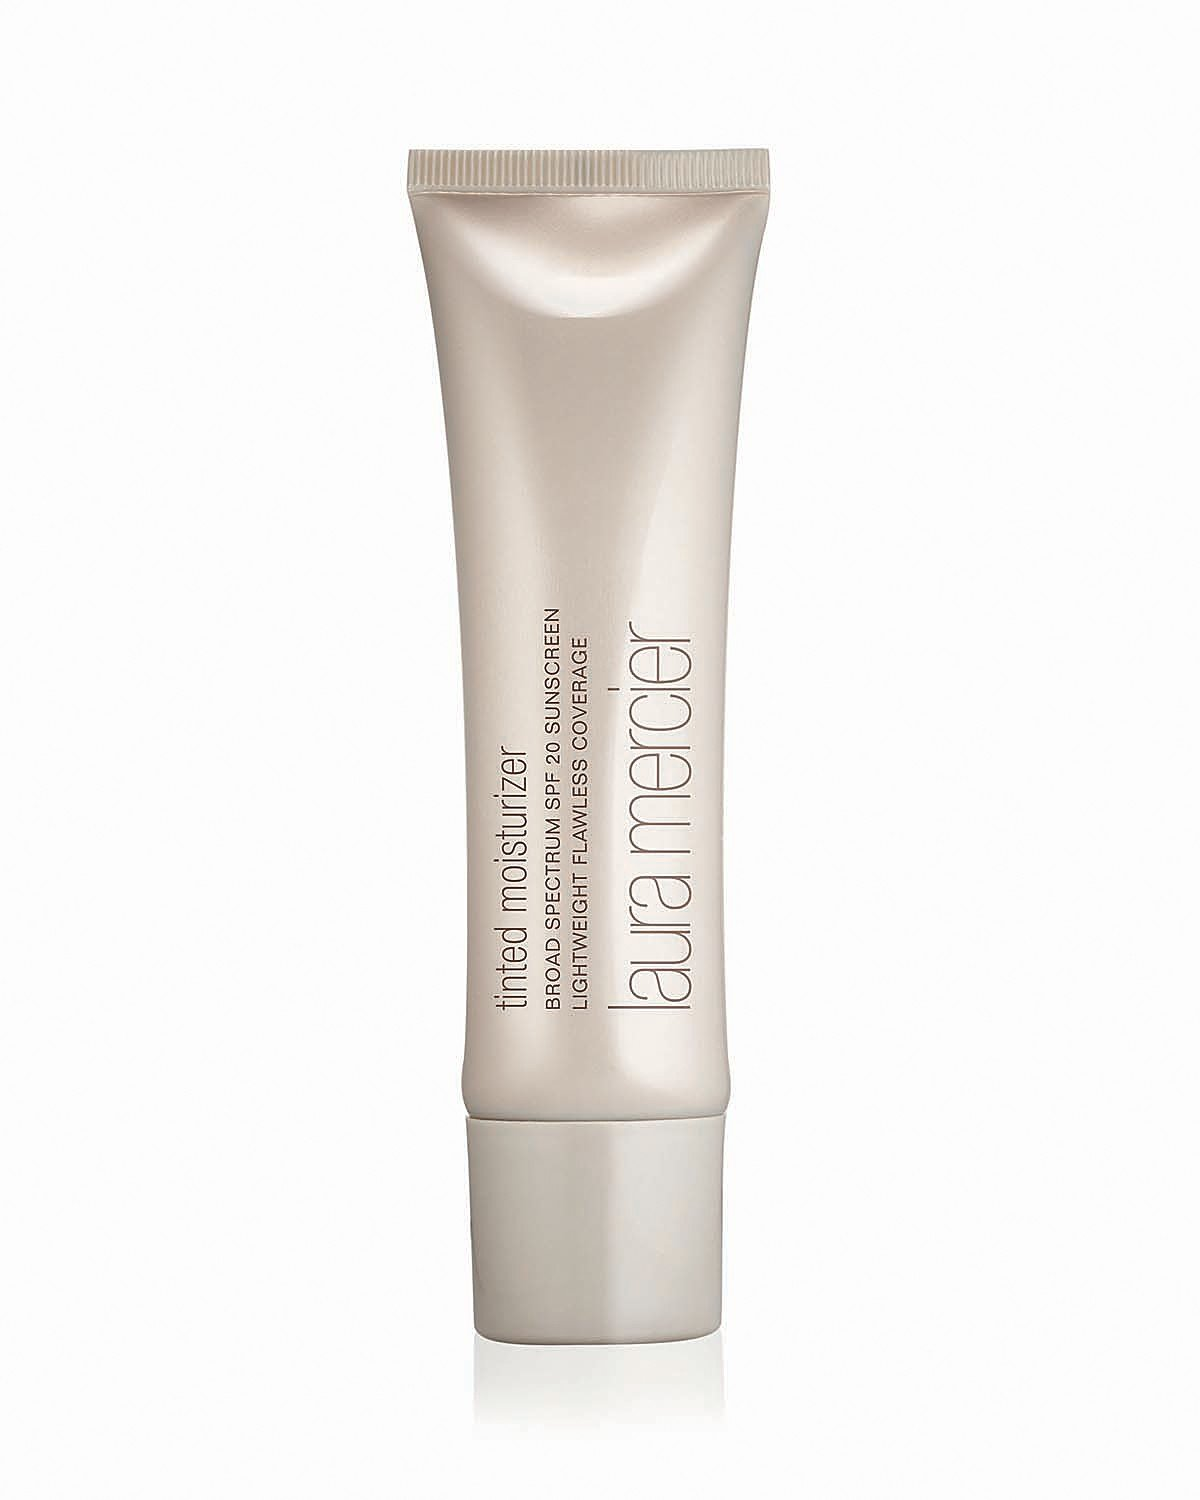 Laura Mercier Tinted Moisturizer NUDE SPF 20 .5 oz Deluxe Travel Size, NEW